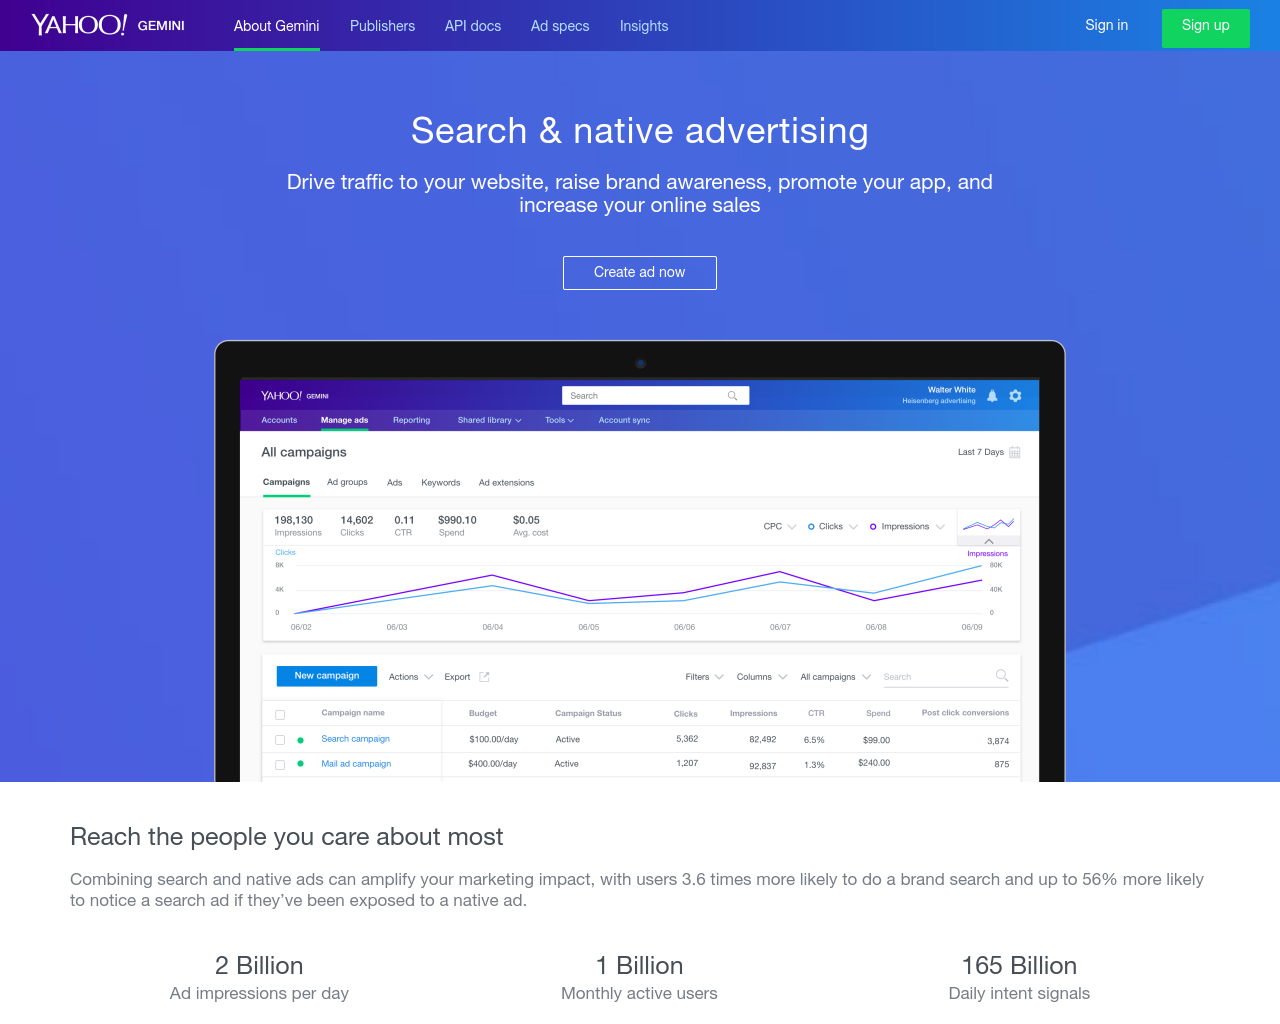 Yahoo!-Gemini-Advertising-Reviews-Pricing